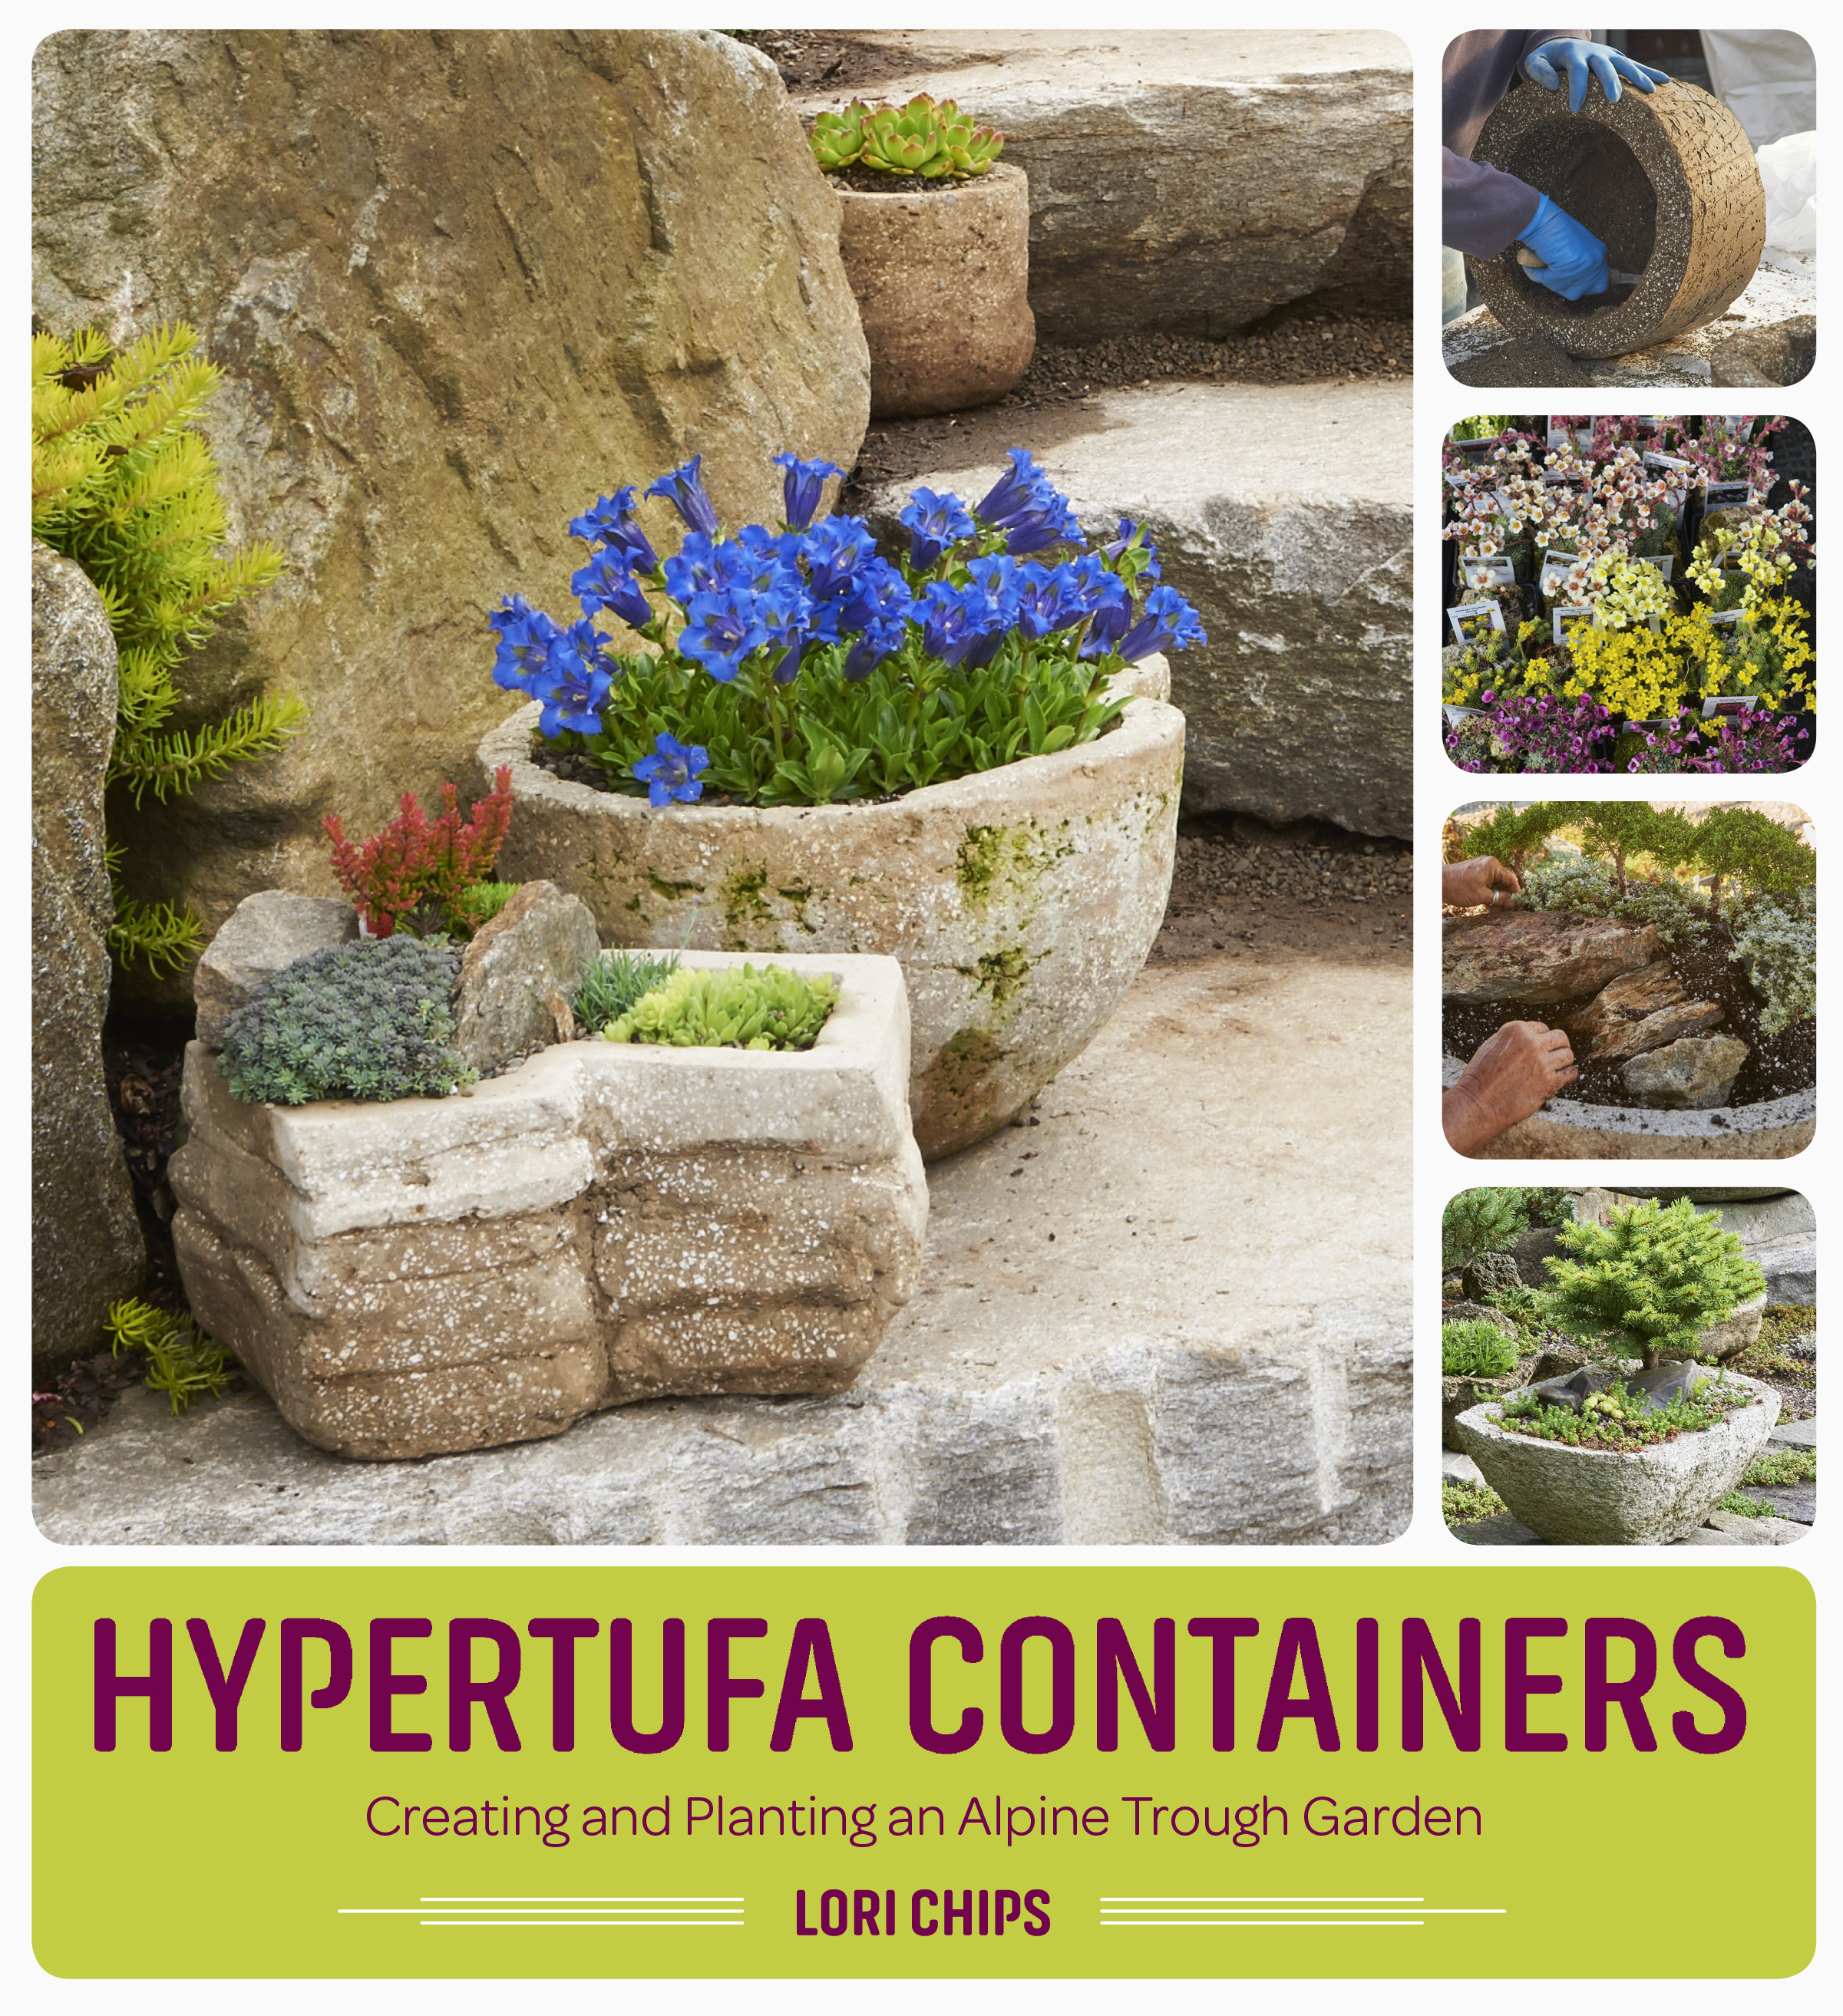 Hypertufa Containers Creating and Planting an Alpine Trough Garden